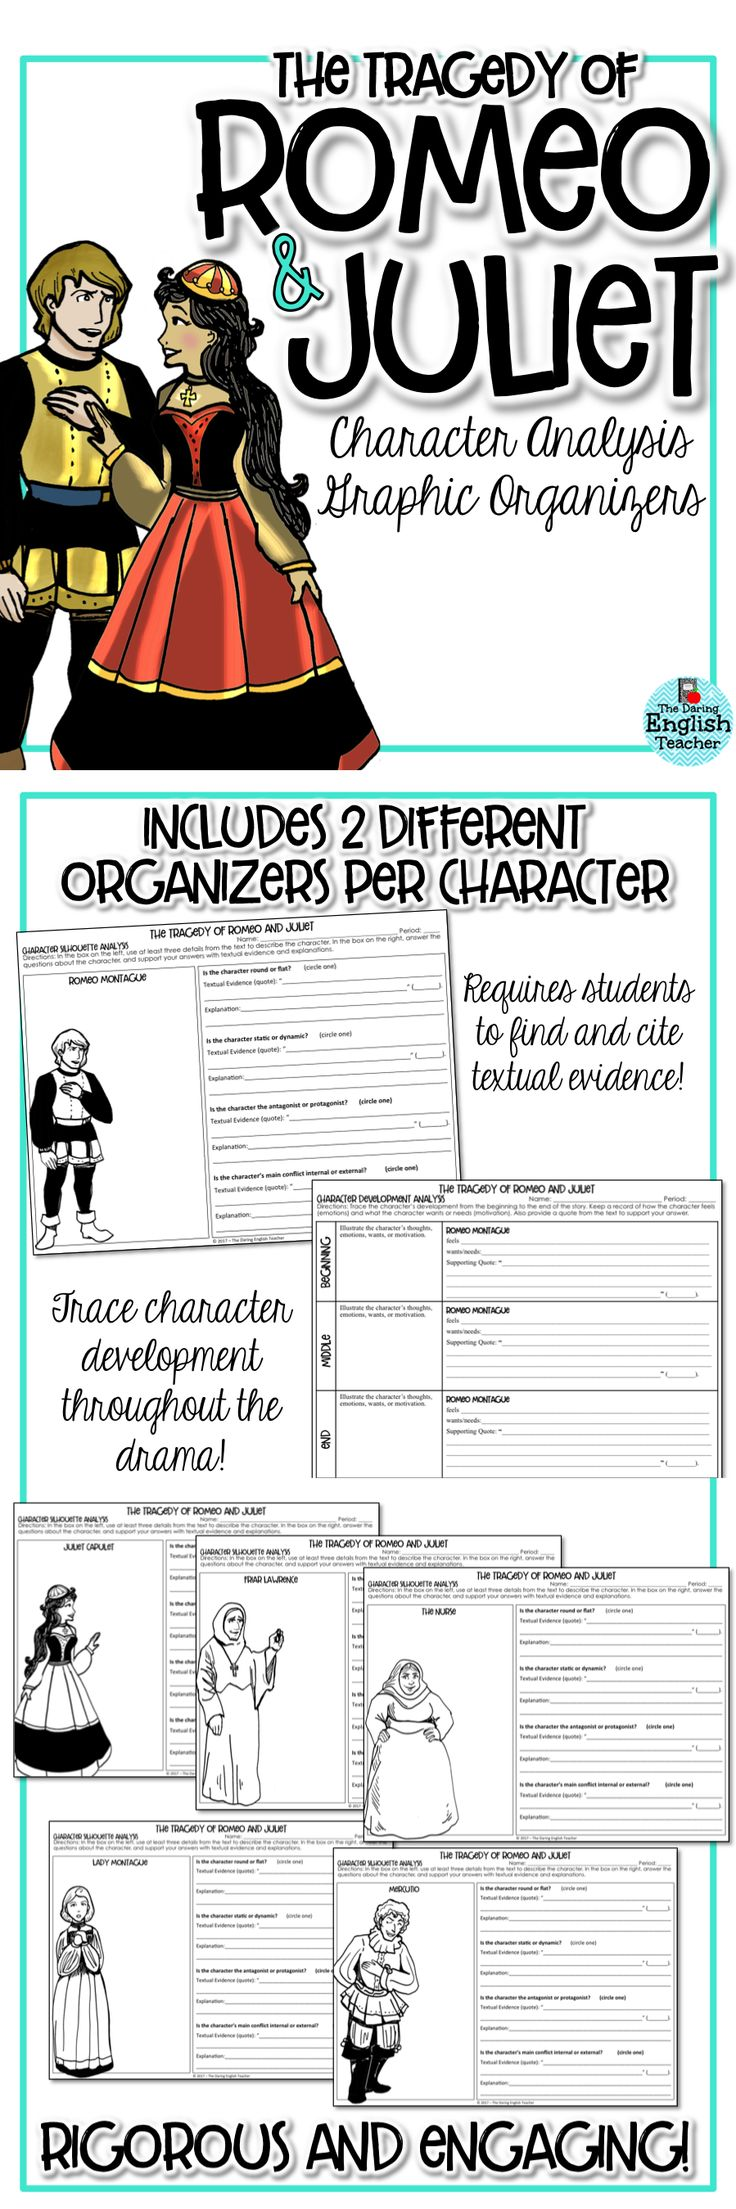 Character analysis graphic organizers for William Shakespeare's 'The Tragedy of Romeo and Juliet.'